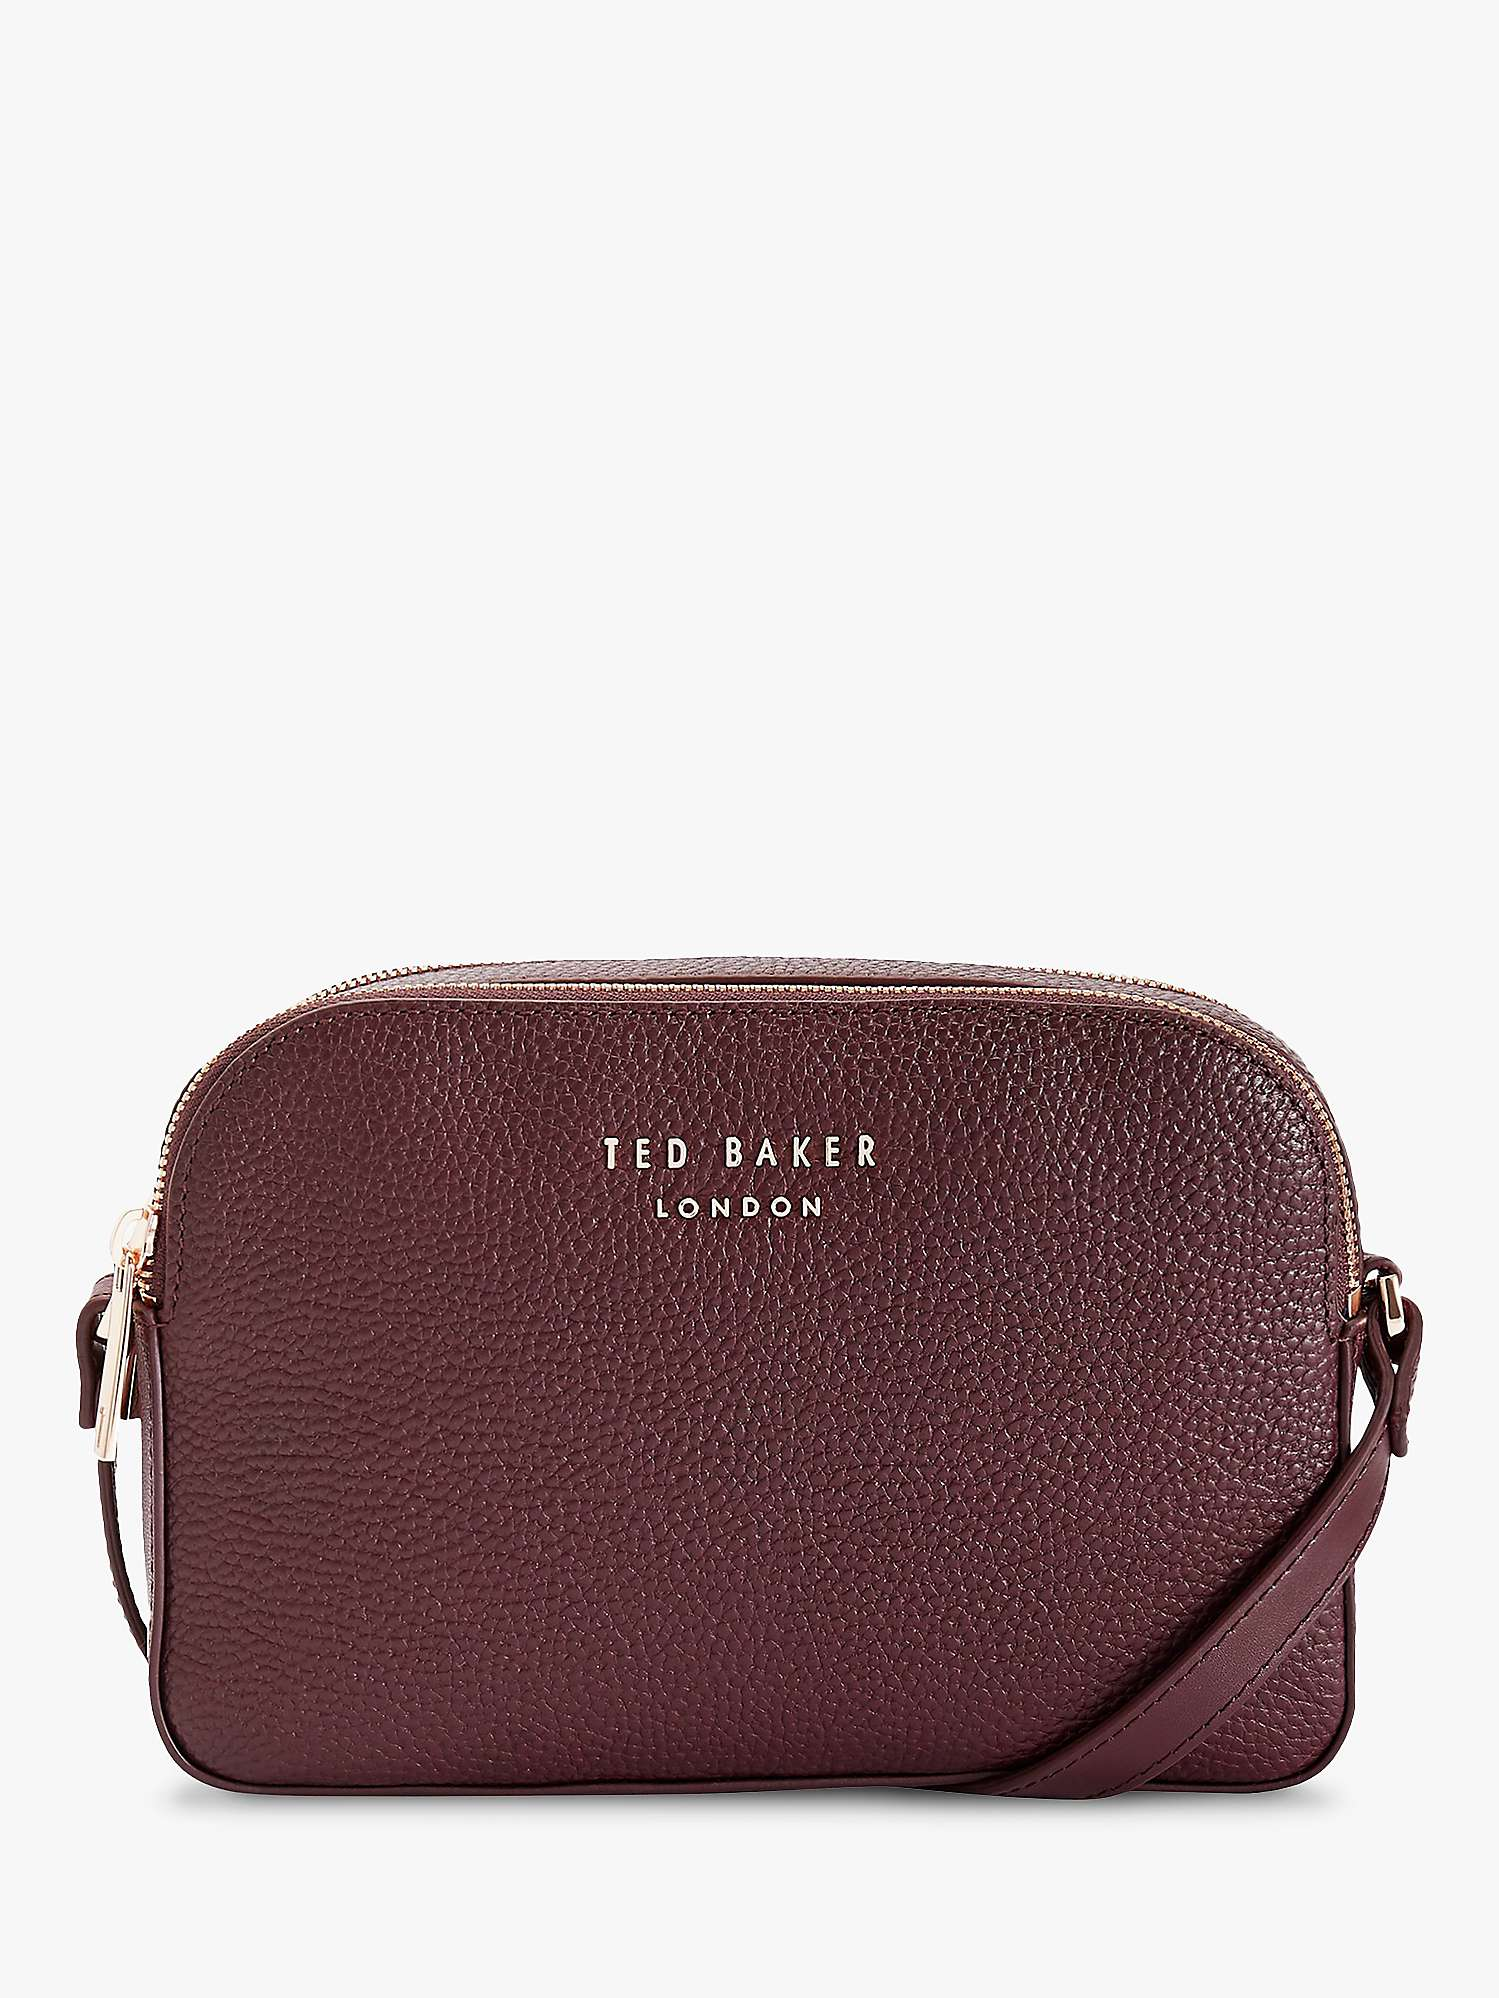 Ted Baker Daisi Leather Camera Bag, Red Bordeaux by John Lewis